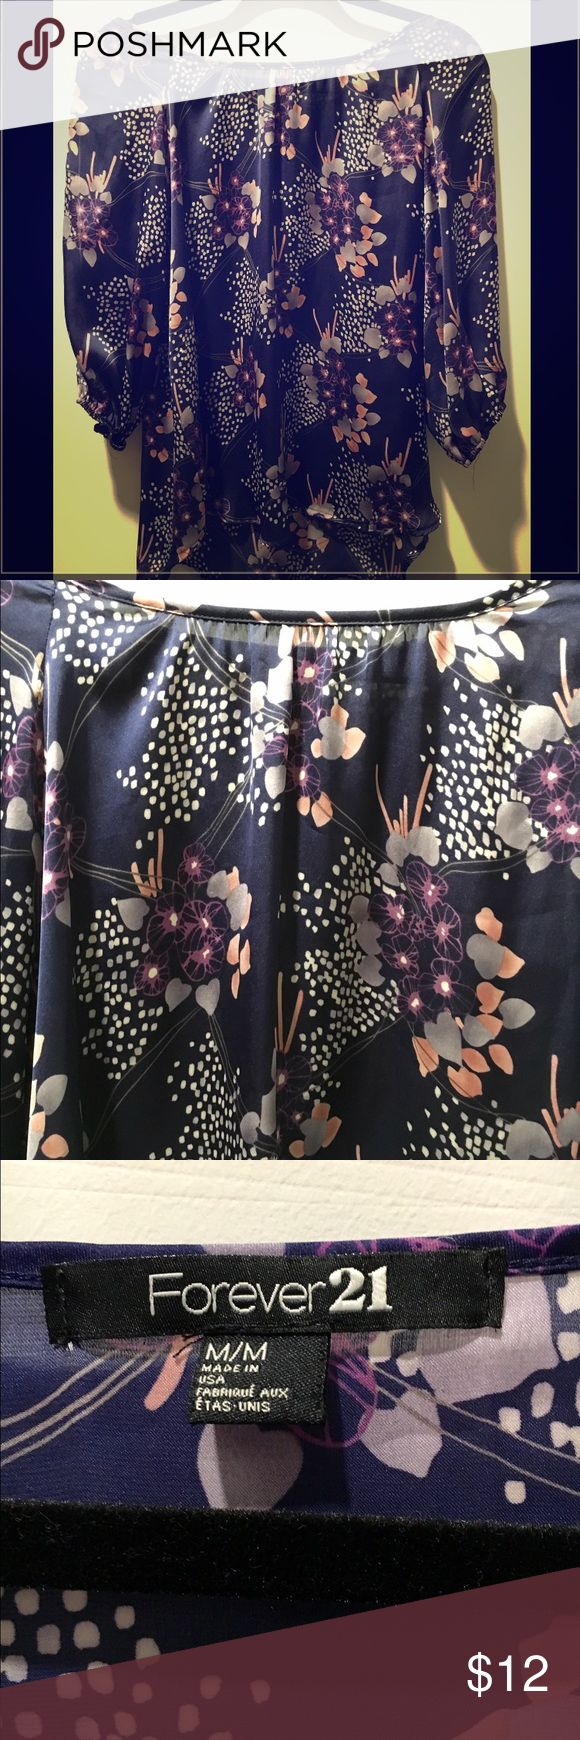 Forever 21 Flower Flowing Blouse w/ slits in arms Forever 21 Flower Flowing Blouse w/ slits in arms - color is purple - silky material - size medium - super cute and in great condition! Forever 21 Tops Blouses